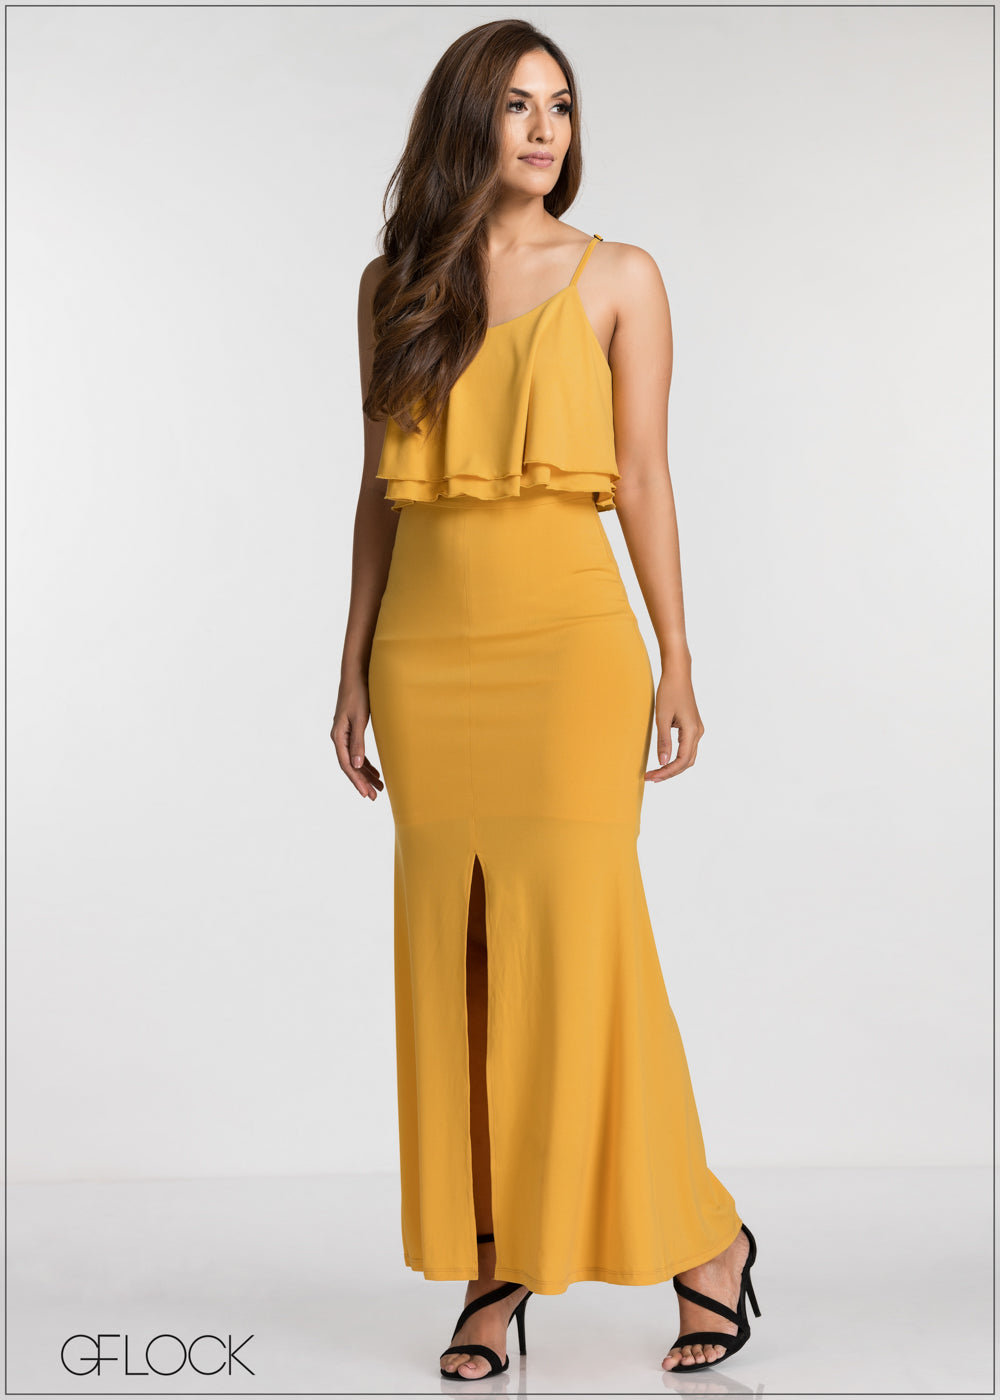 Front Slit Detailed Evening Dress - GFLOCK.LK